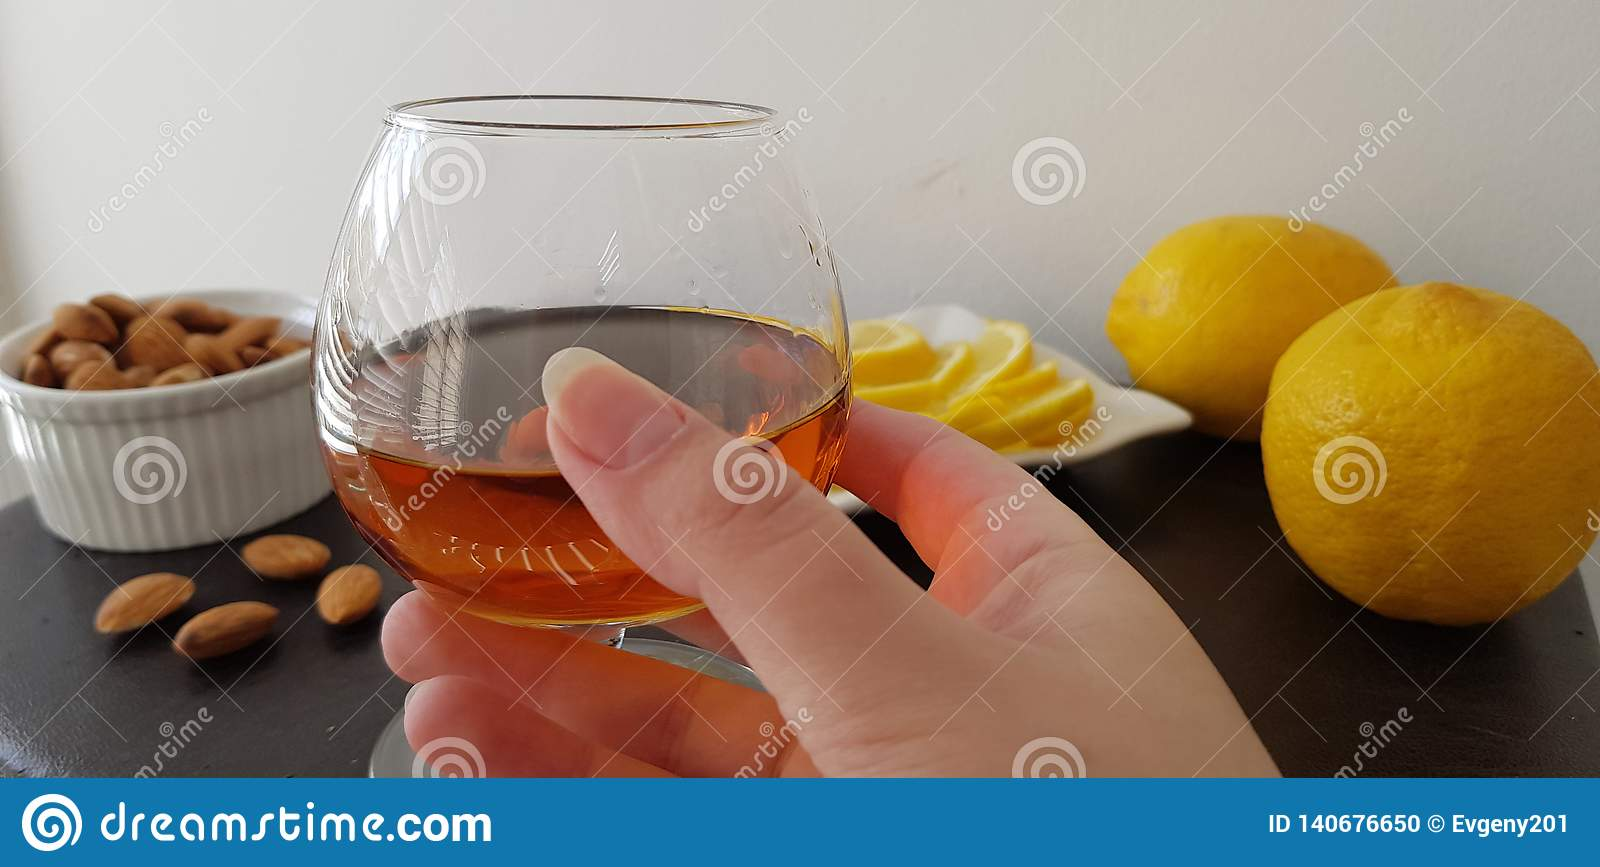 glass half full with brandy over brown table with almonds and lemons